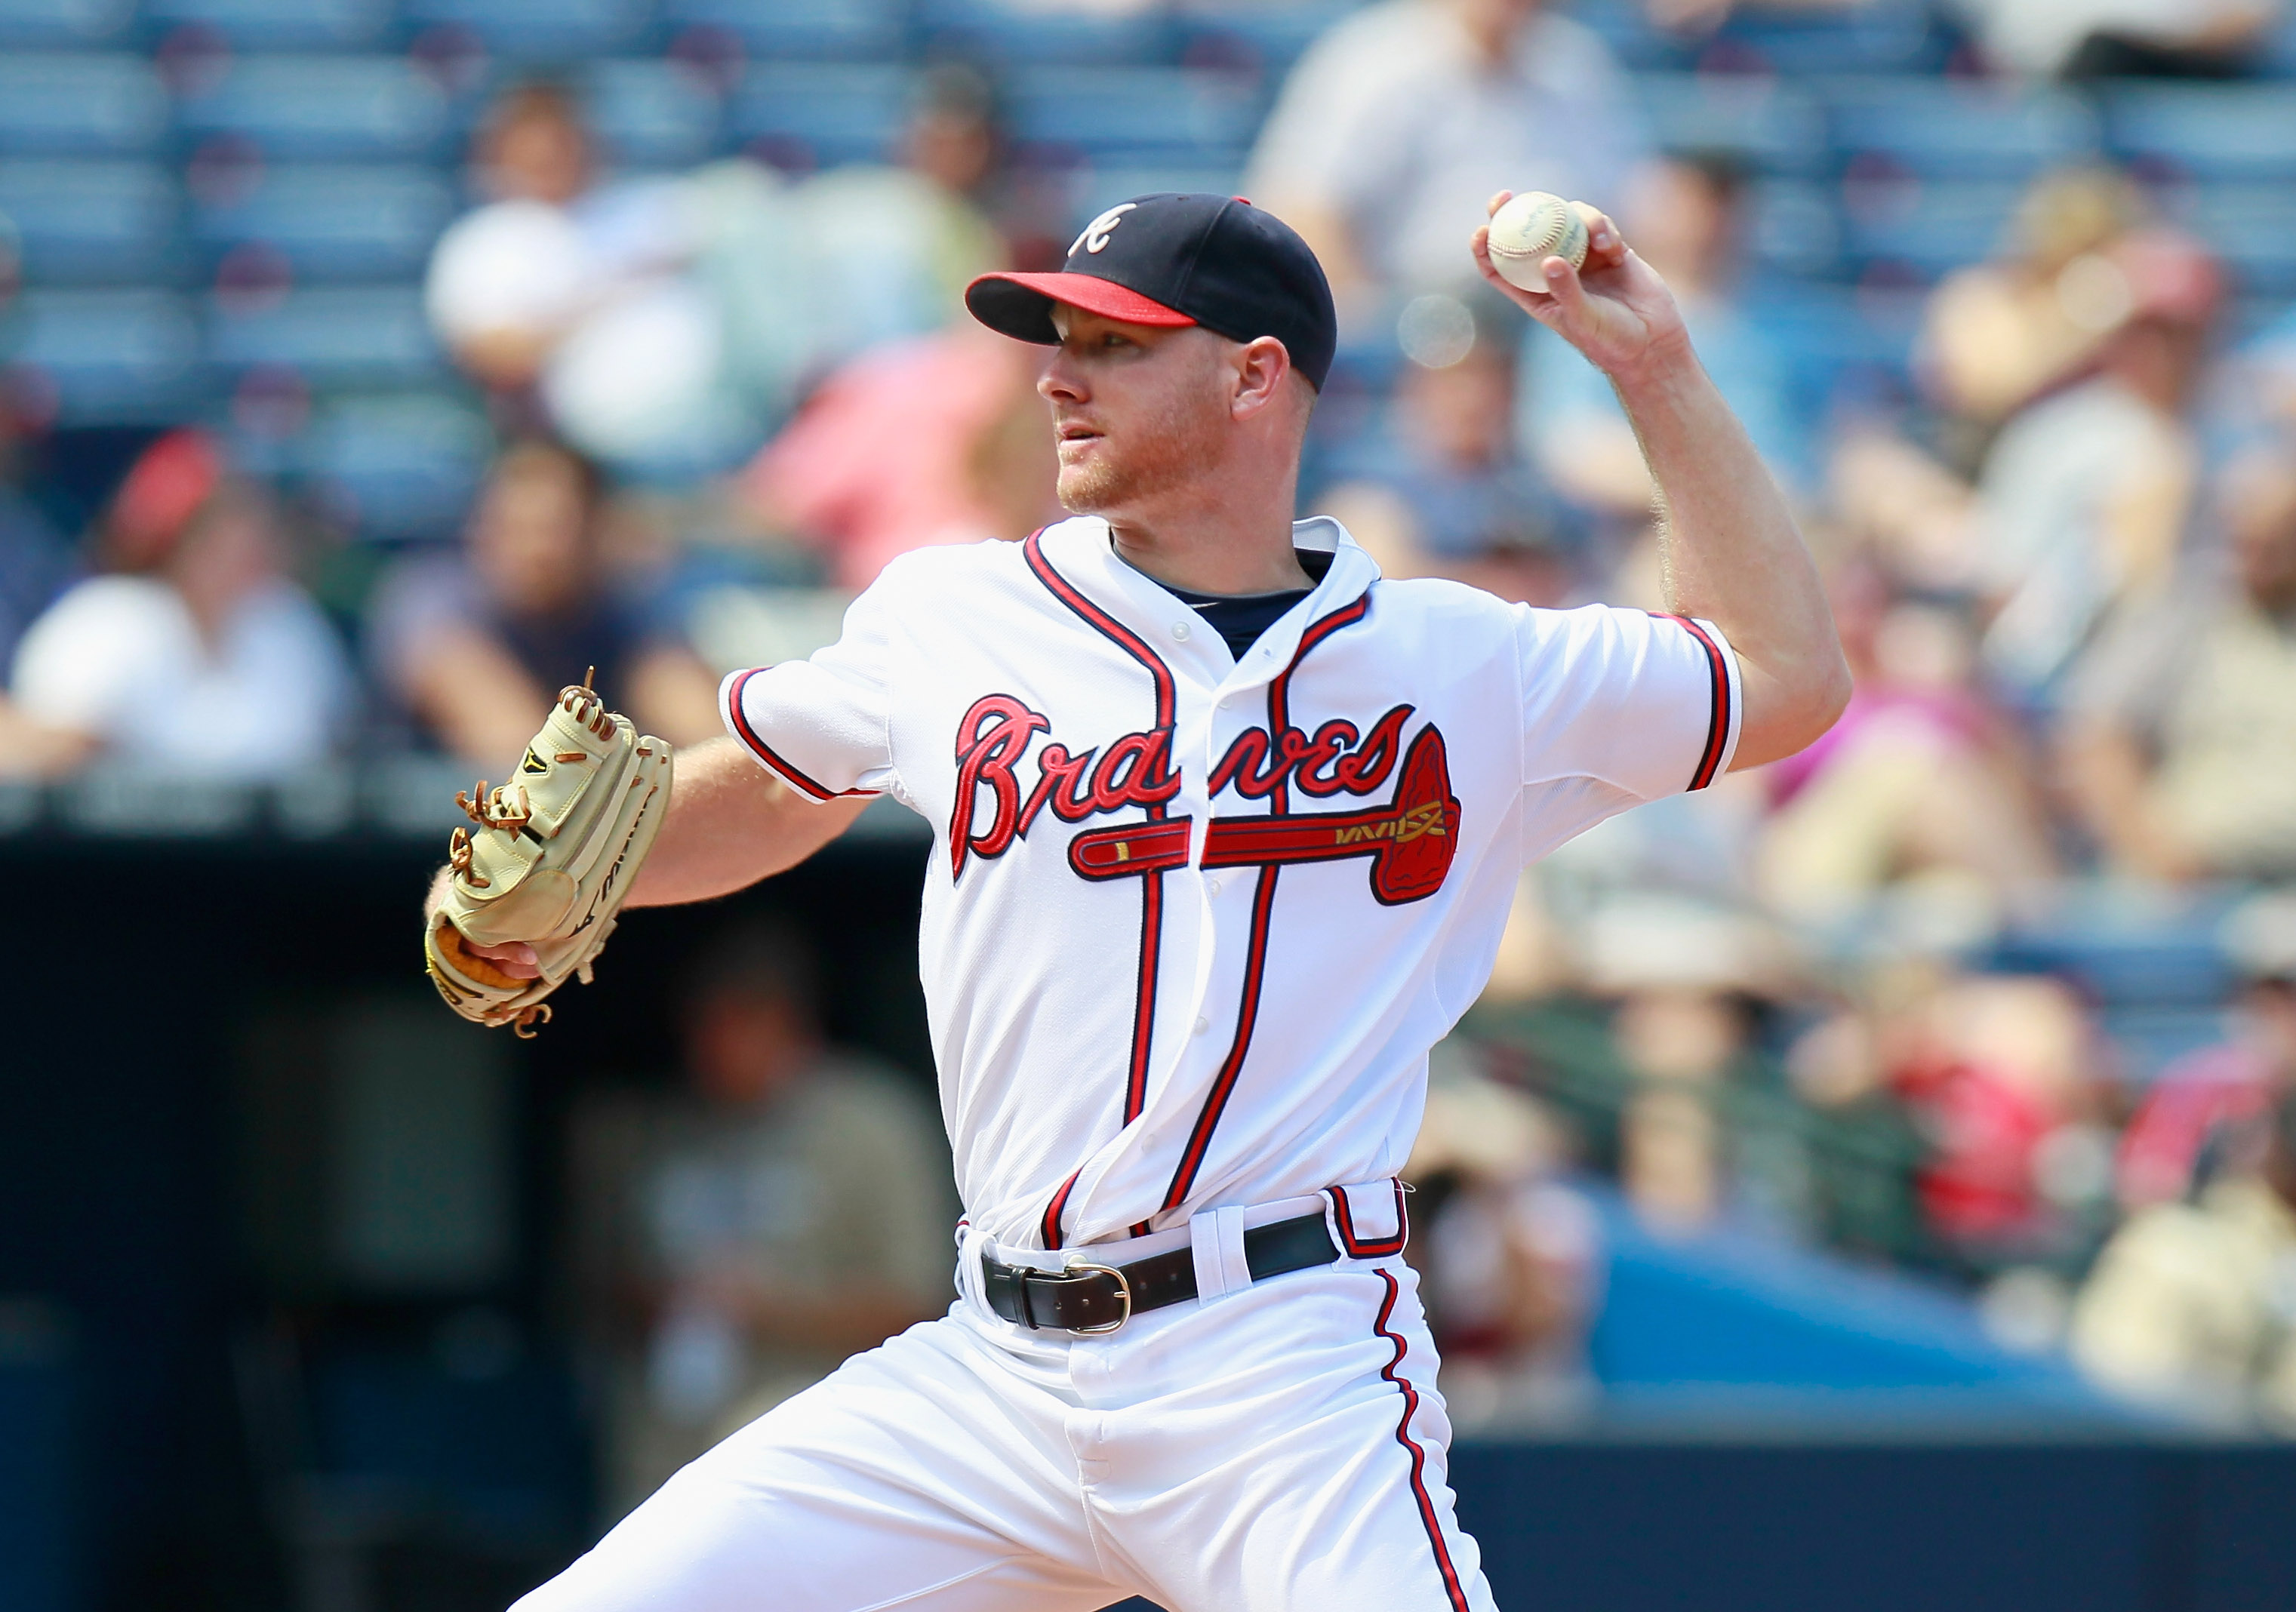 ATLANTA - SEPTEMBER 15:  Pitcher Jonny Venters #39 of the Atlanta Braves against the Washington Nationals at Turner Field on September 15, 2010 in Atlanta, Georgia.  (Photo by Kevin C. Cox/Getty Images)